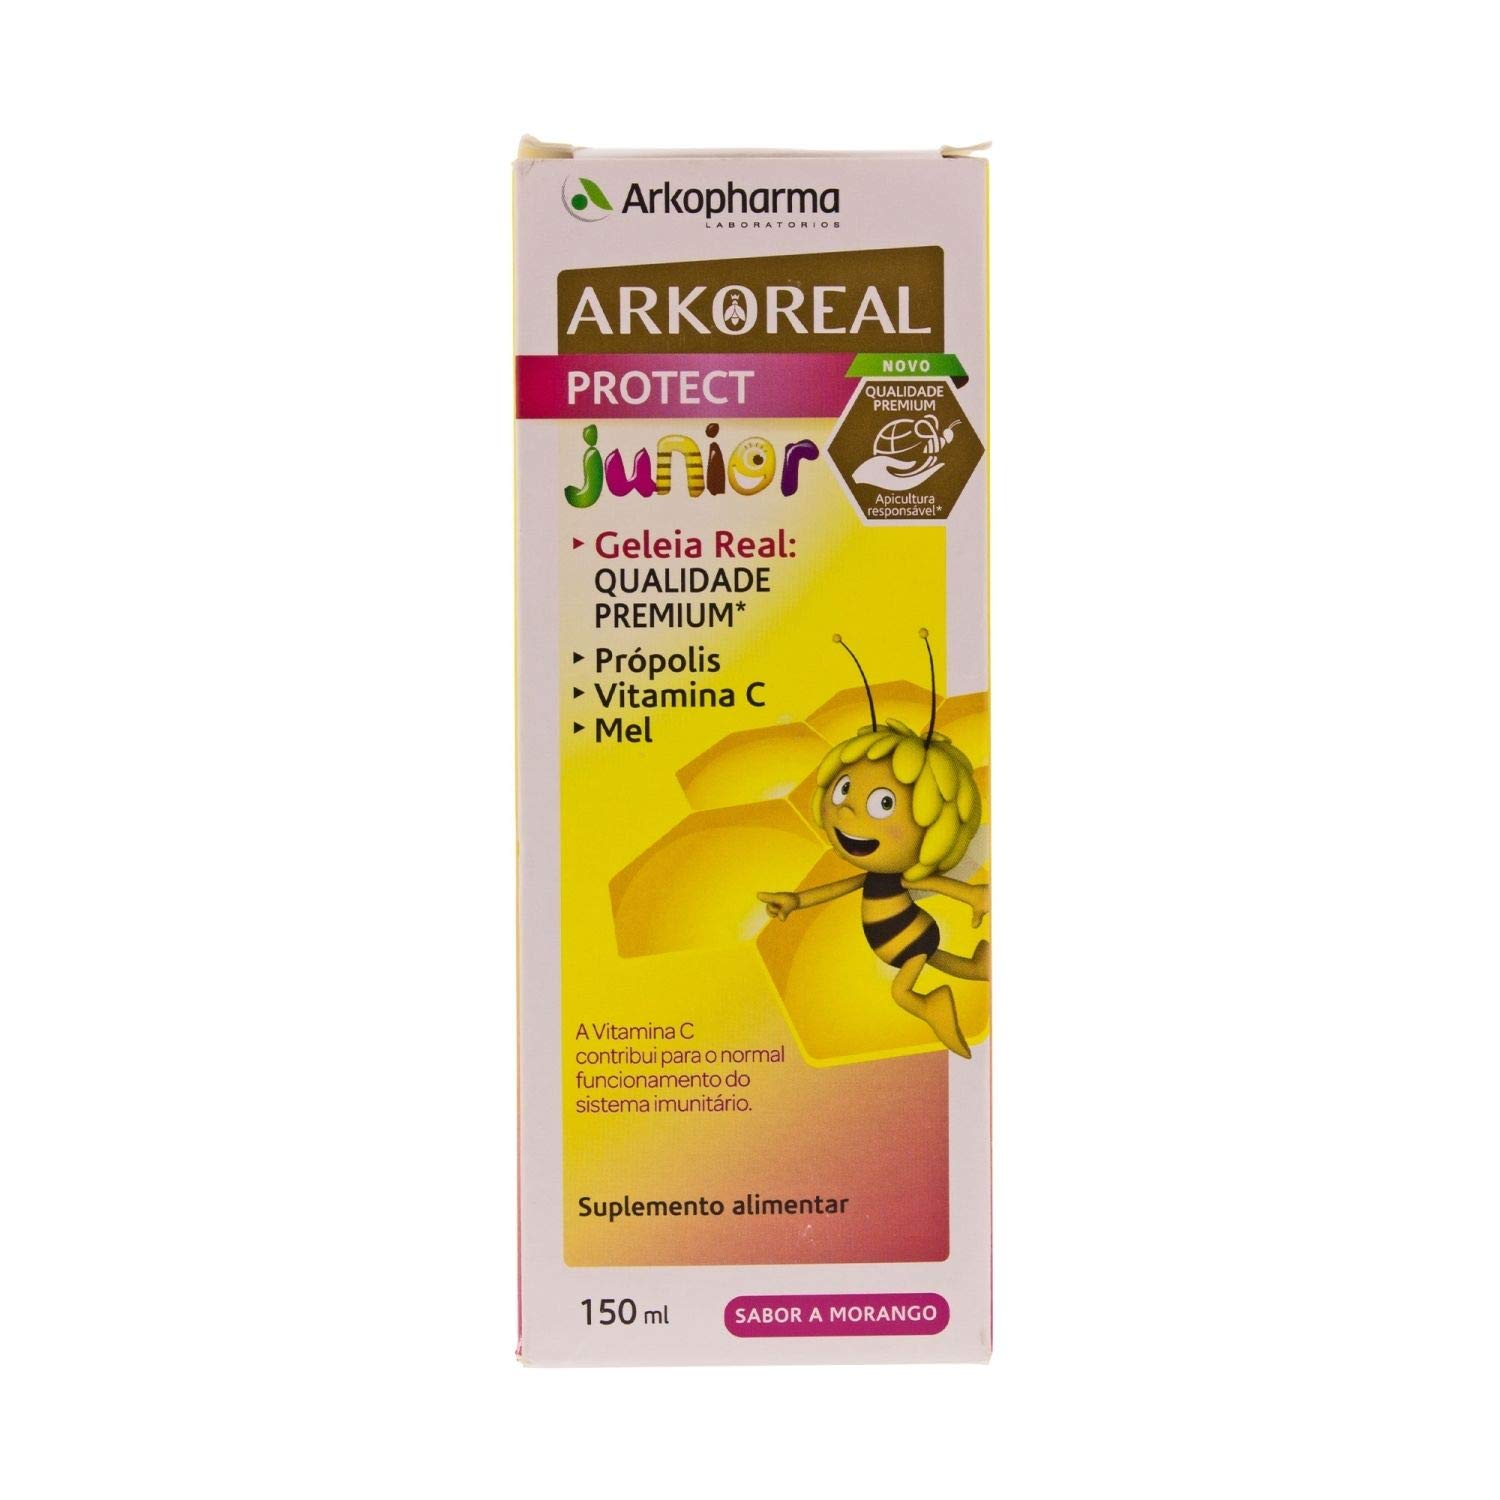 Amazon.com: Arkopharma Arkoreal Royal Jelly Protect Syrup Junior 150ml – Strengthen The Immune System - Premium Quality – Propolis & Vitamin C – Strawberry ...